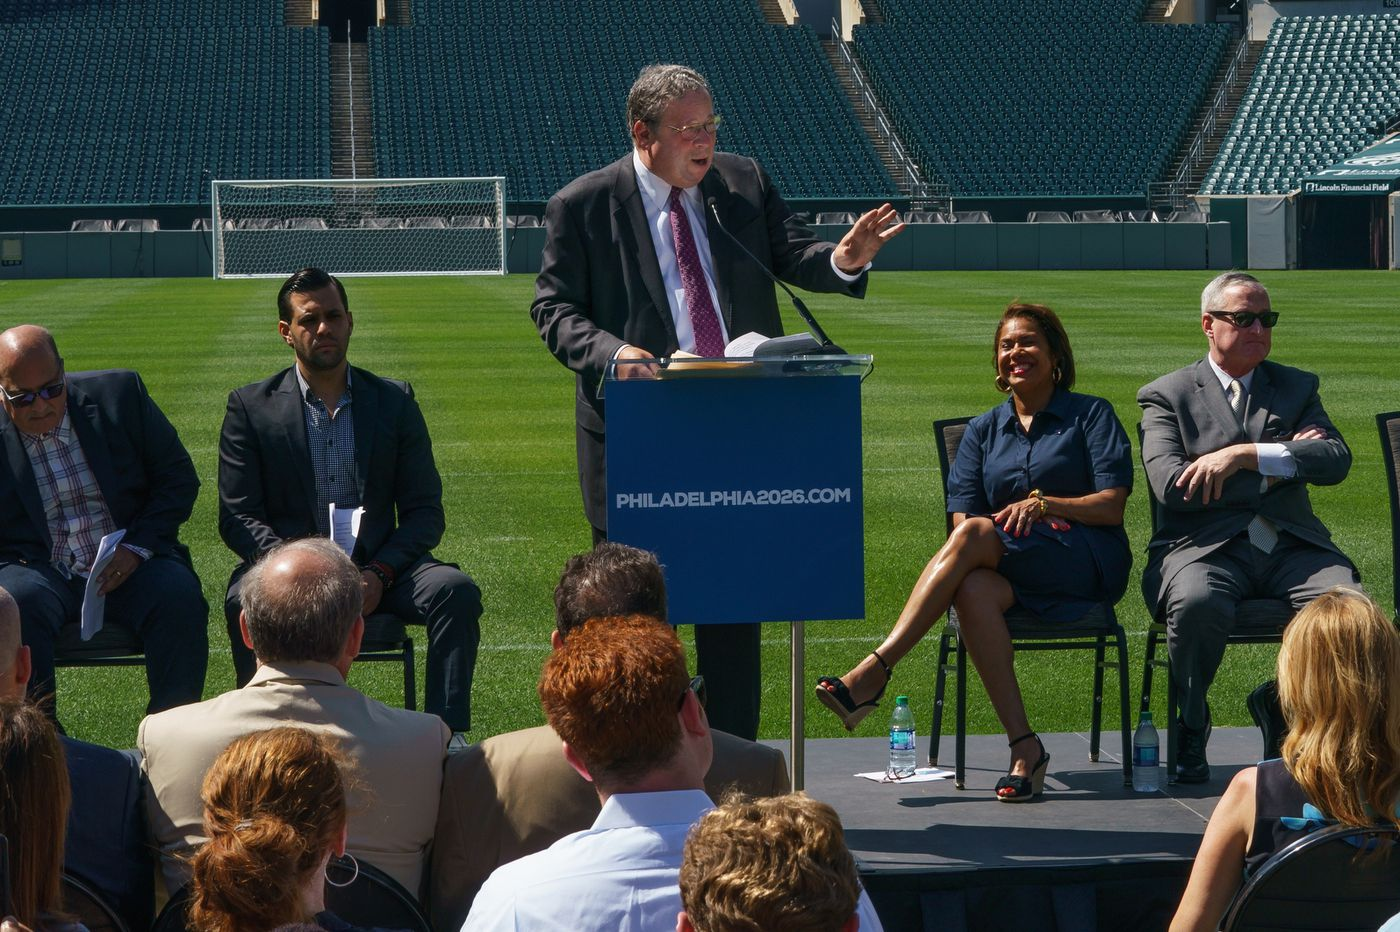 David L. Cohen, one of Philadelphia's most famous power brokers, now leads the city's 2026 World Cup hosting bid